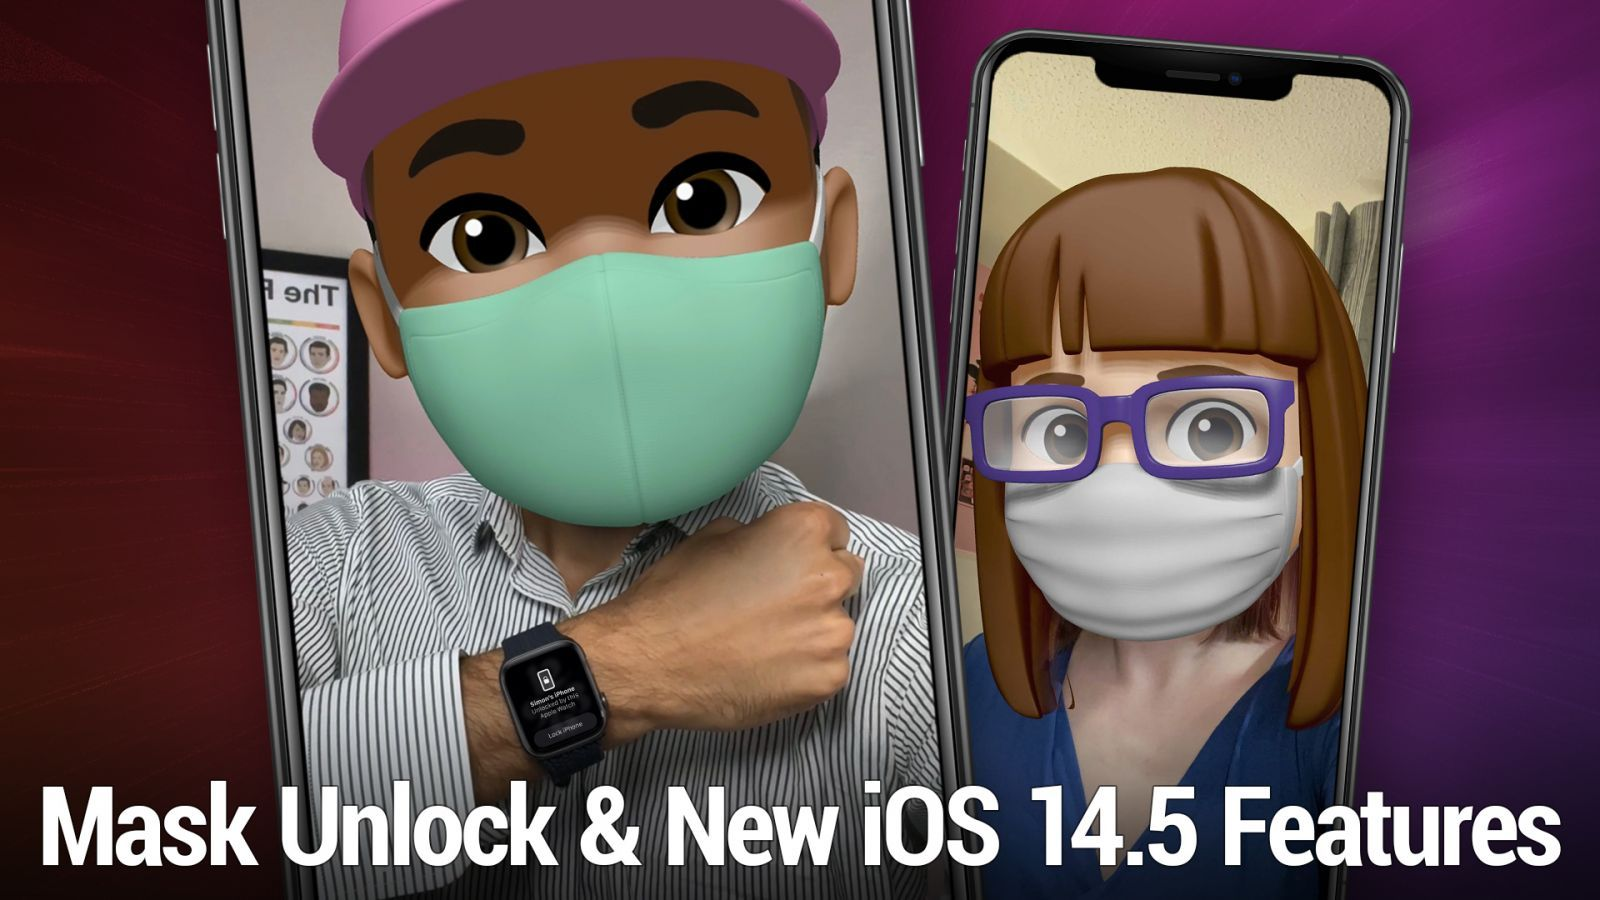 Rosemary and Mikah explore all the new features in iOS 14.5, and Rosemary unboxes her AirTags and AirTag accessories.